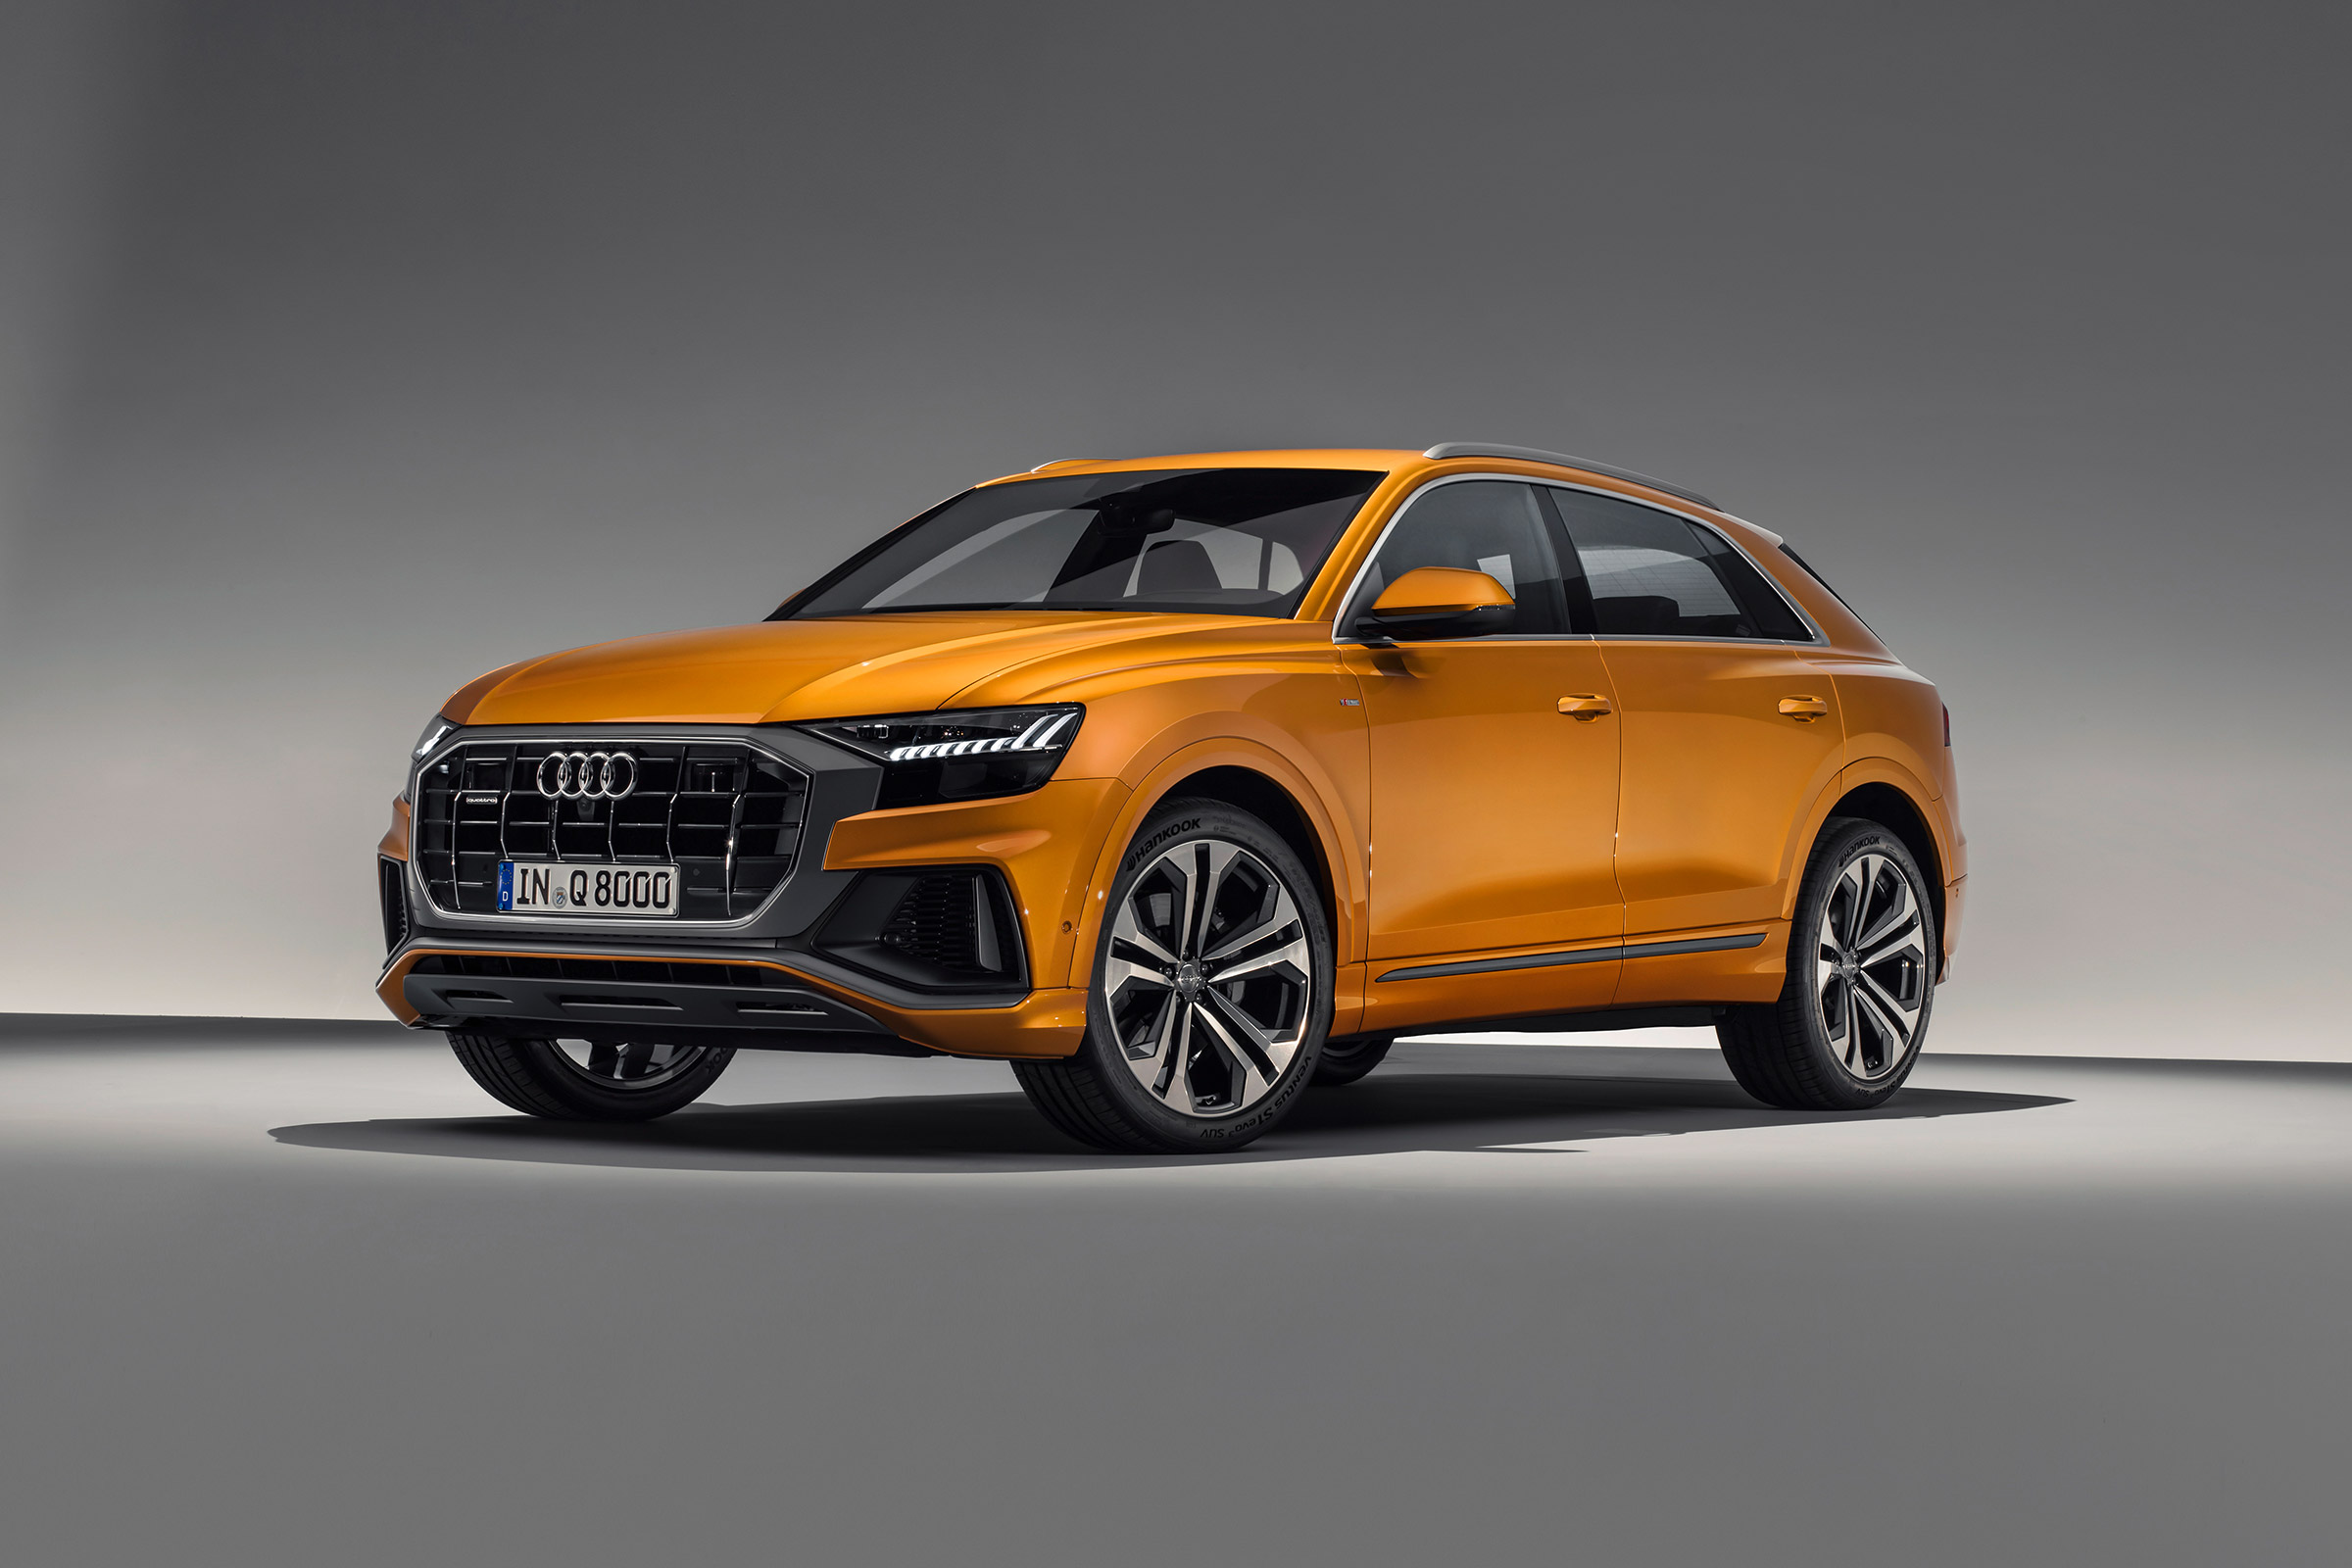 All-new 2018 Audi Q8 revealed - a BMW X6 rival done properly?   evo